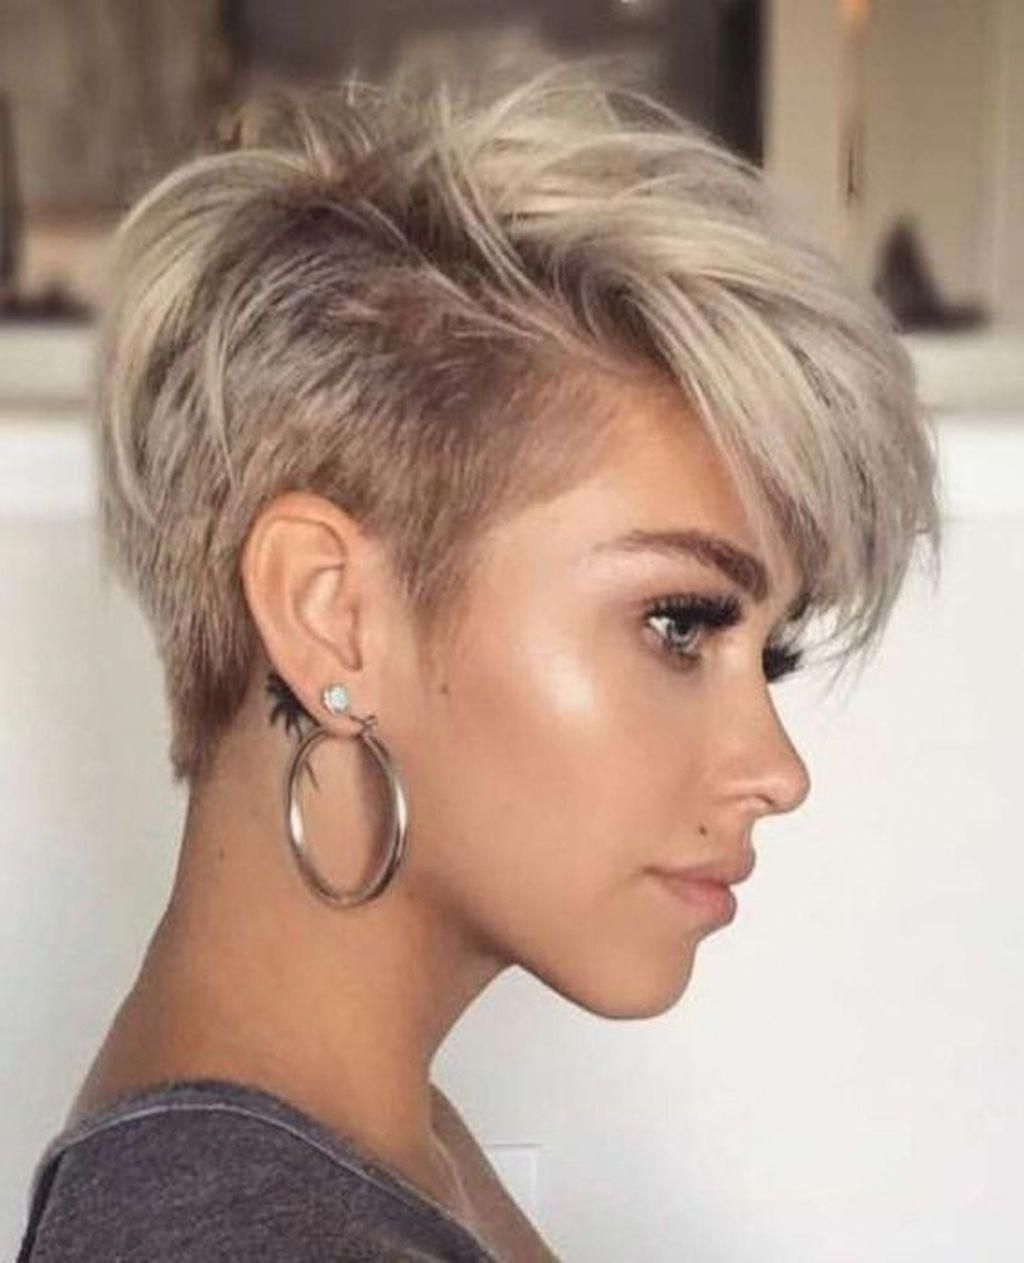 38 Lovely Short Hairstyles Thin Hair Ideas #shorthairstylesforwomen | Short  hair images, Short hair styles, Cool short hairstyles